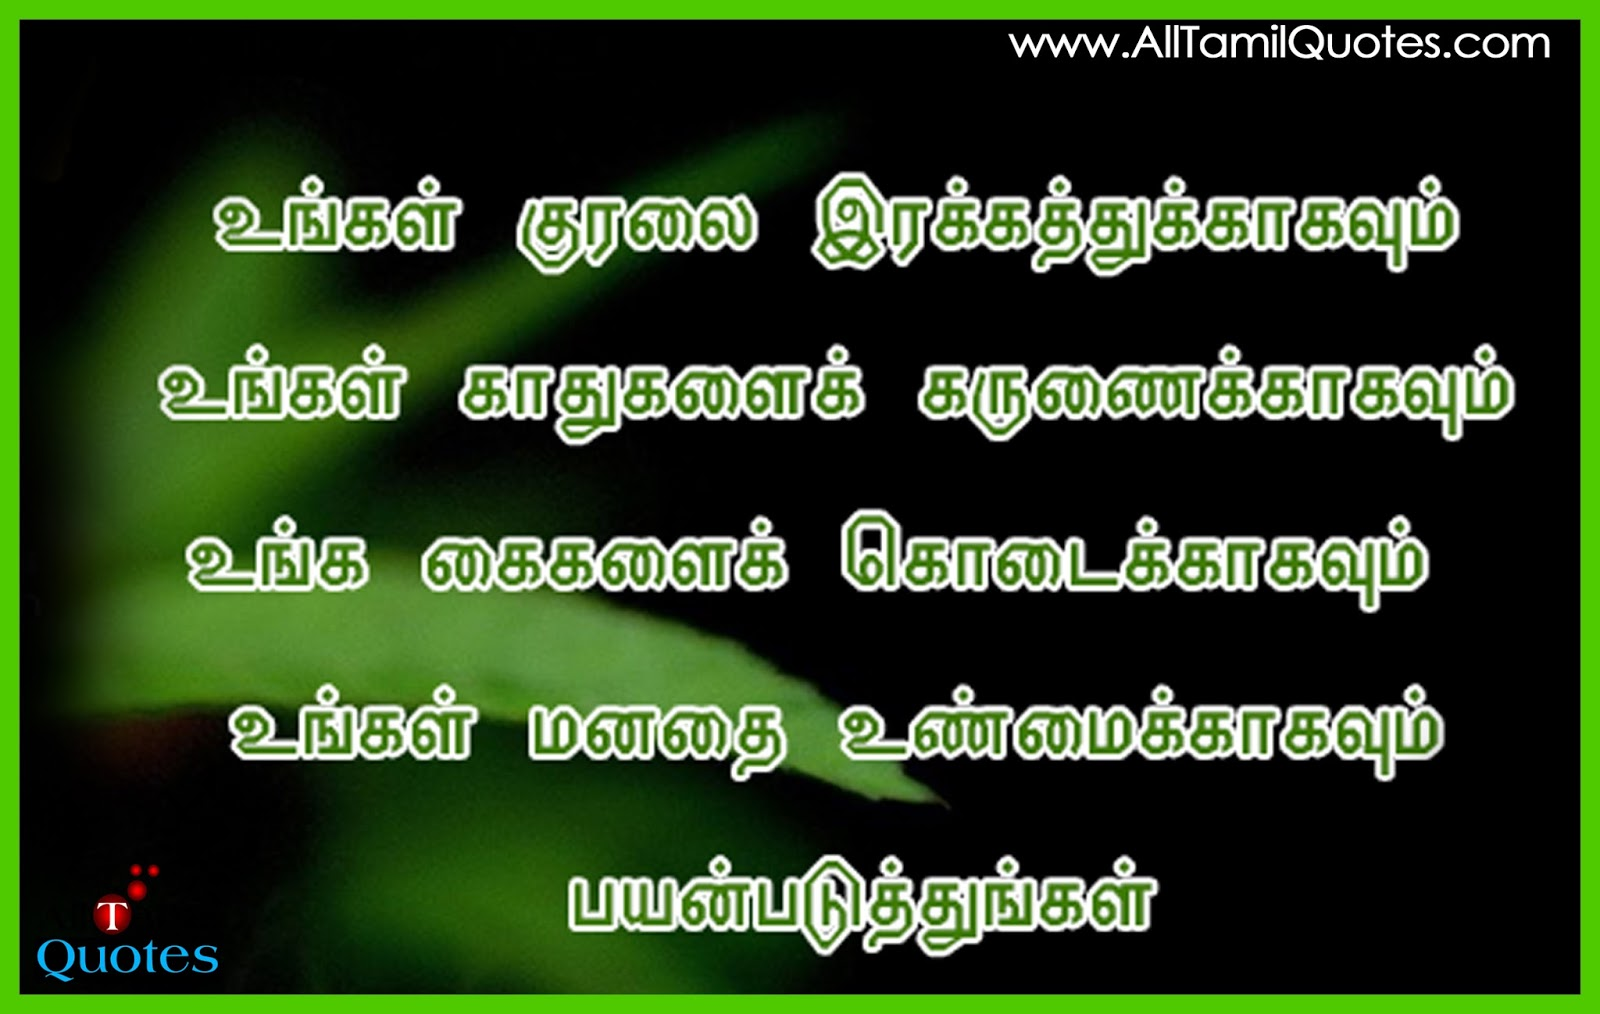 Best Tamil Quotes About Heart Beat Quotes About Life